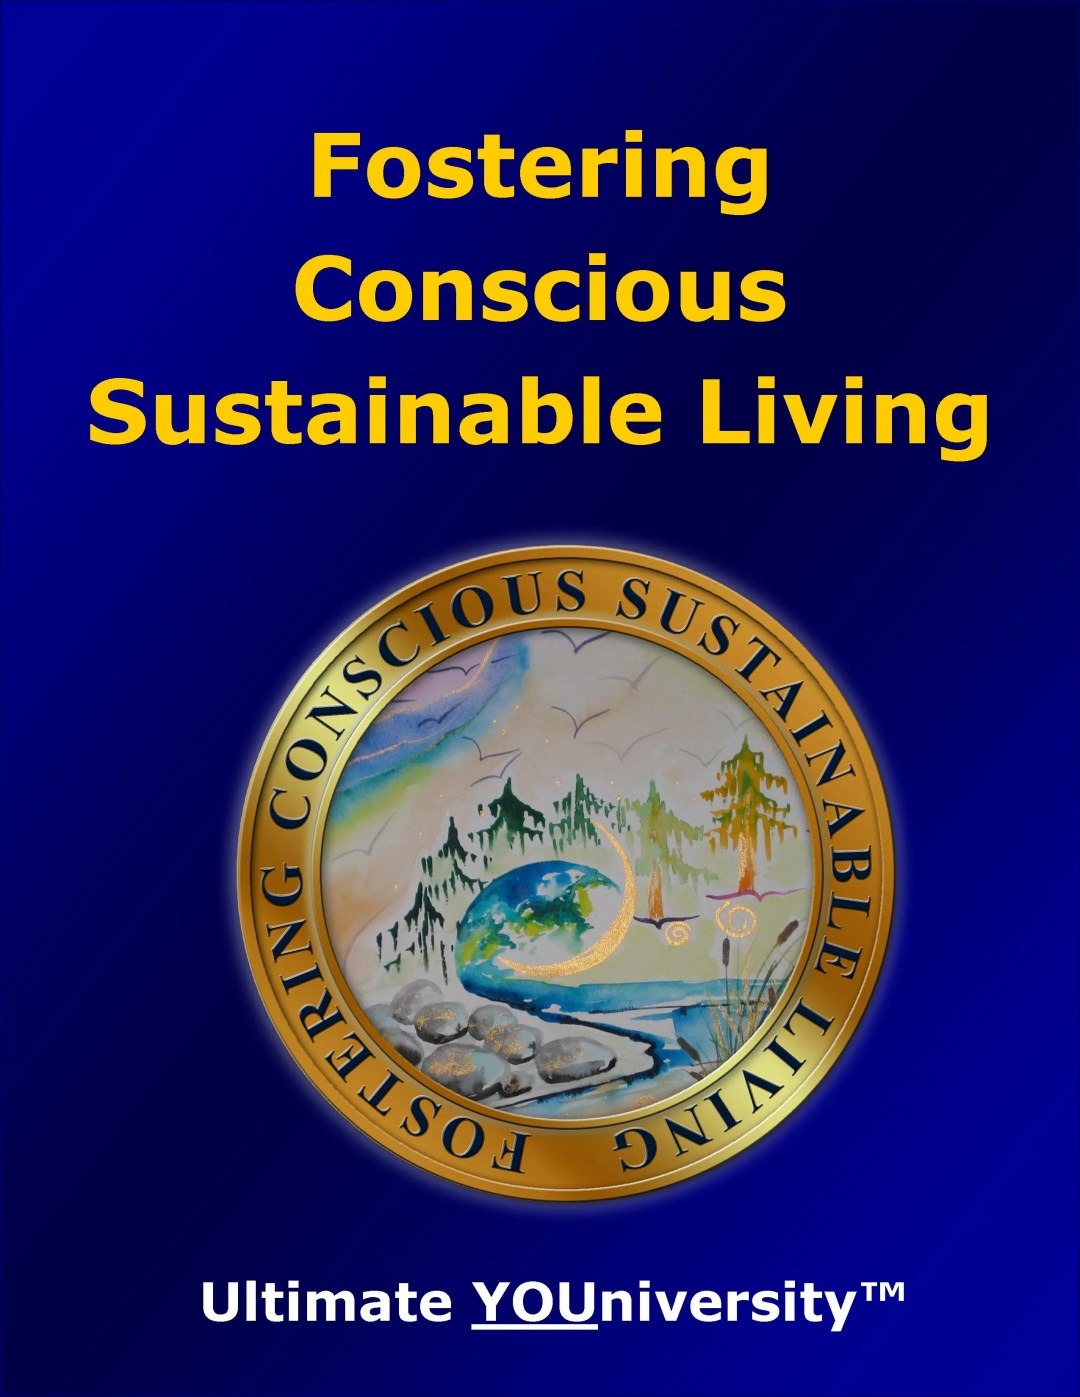 Fostering Conscious Sustainable Living, one of the 14 Categories